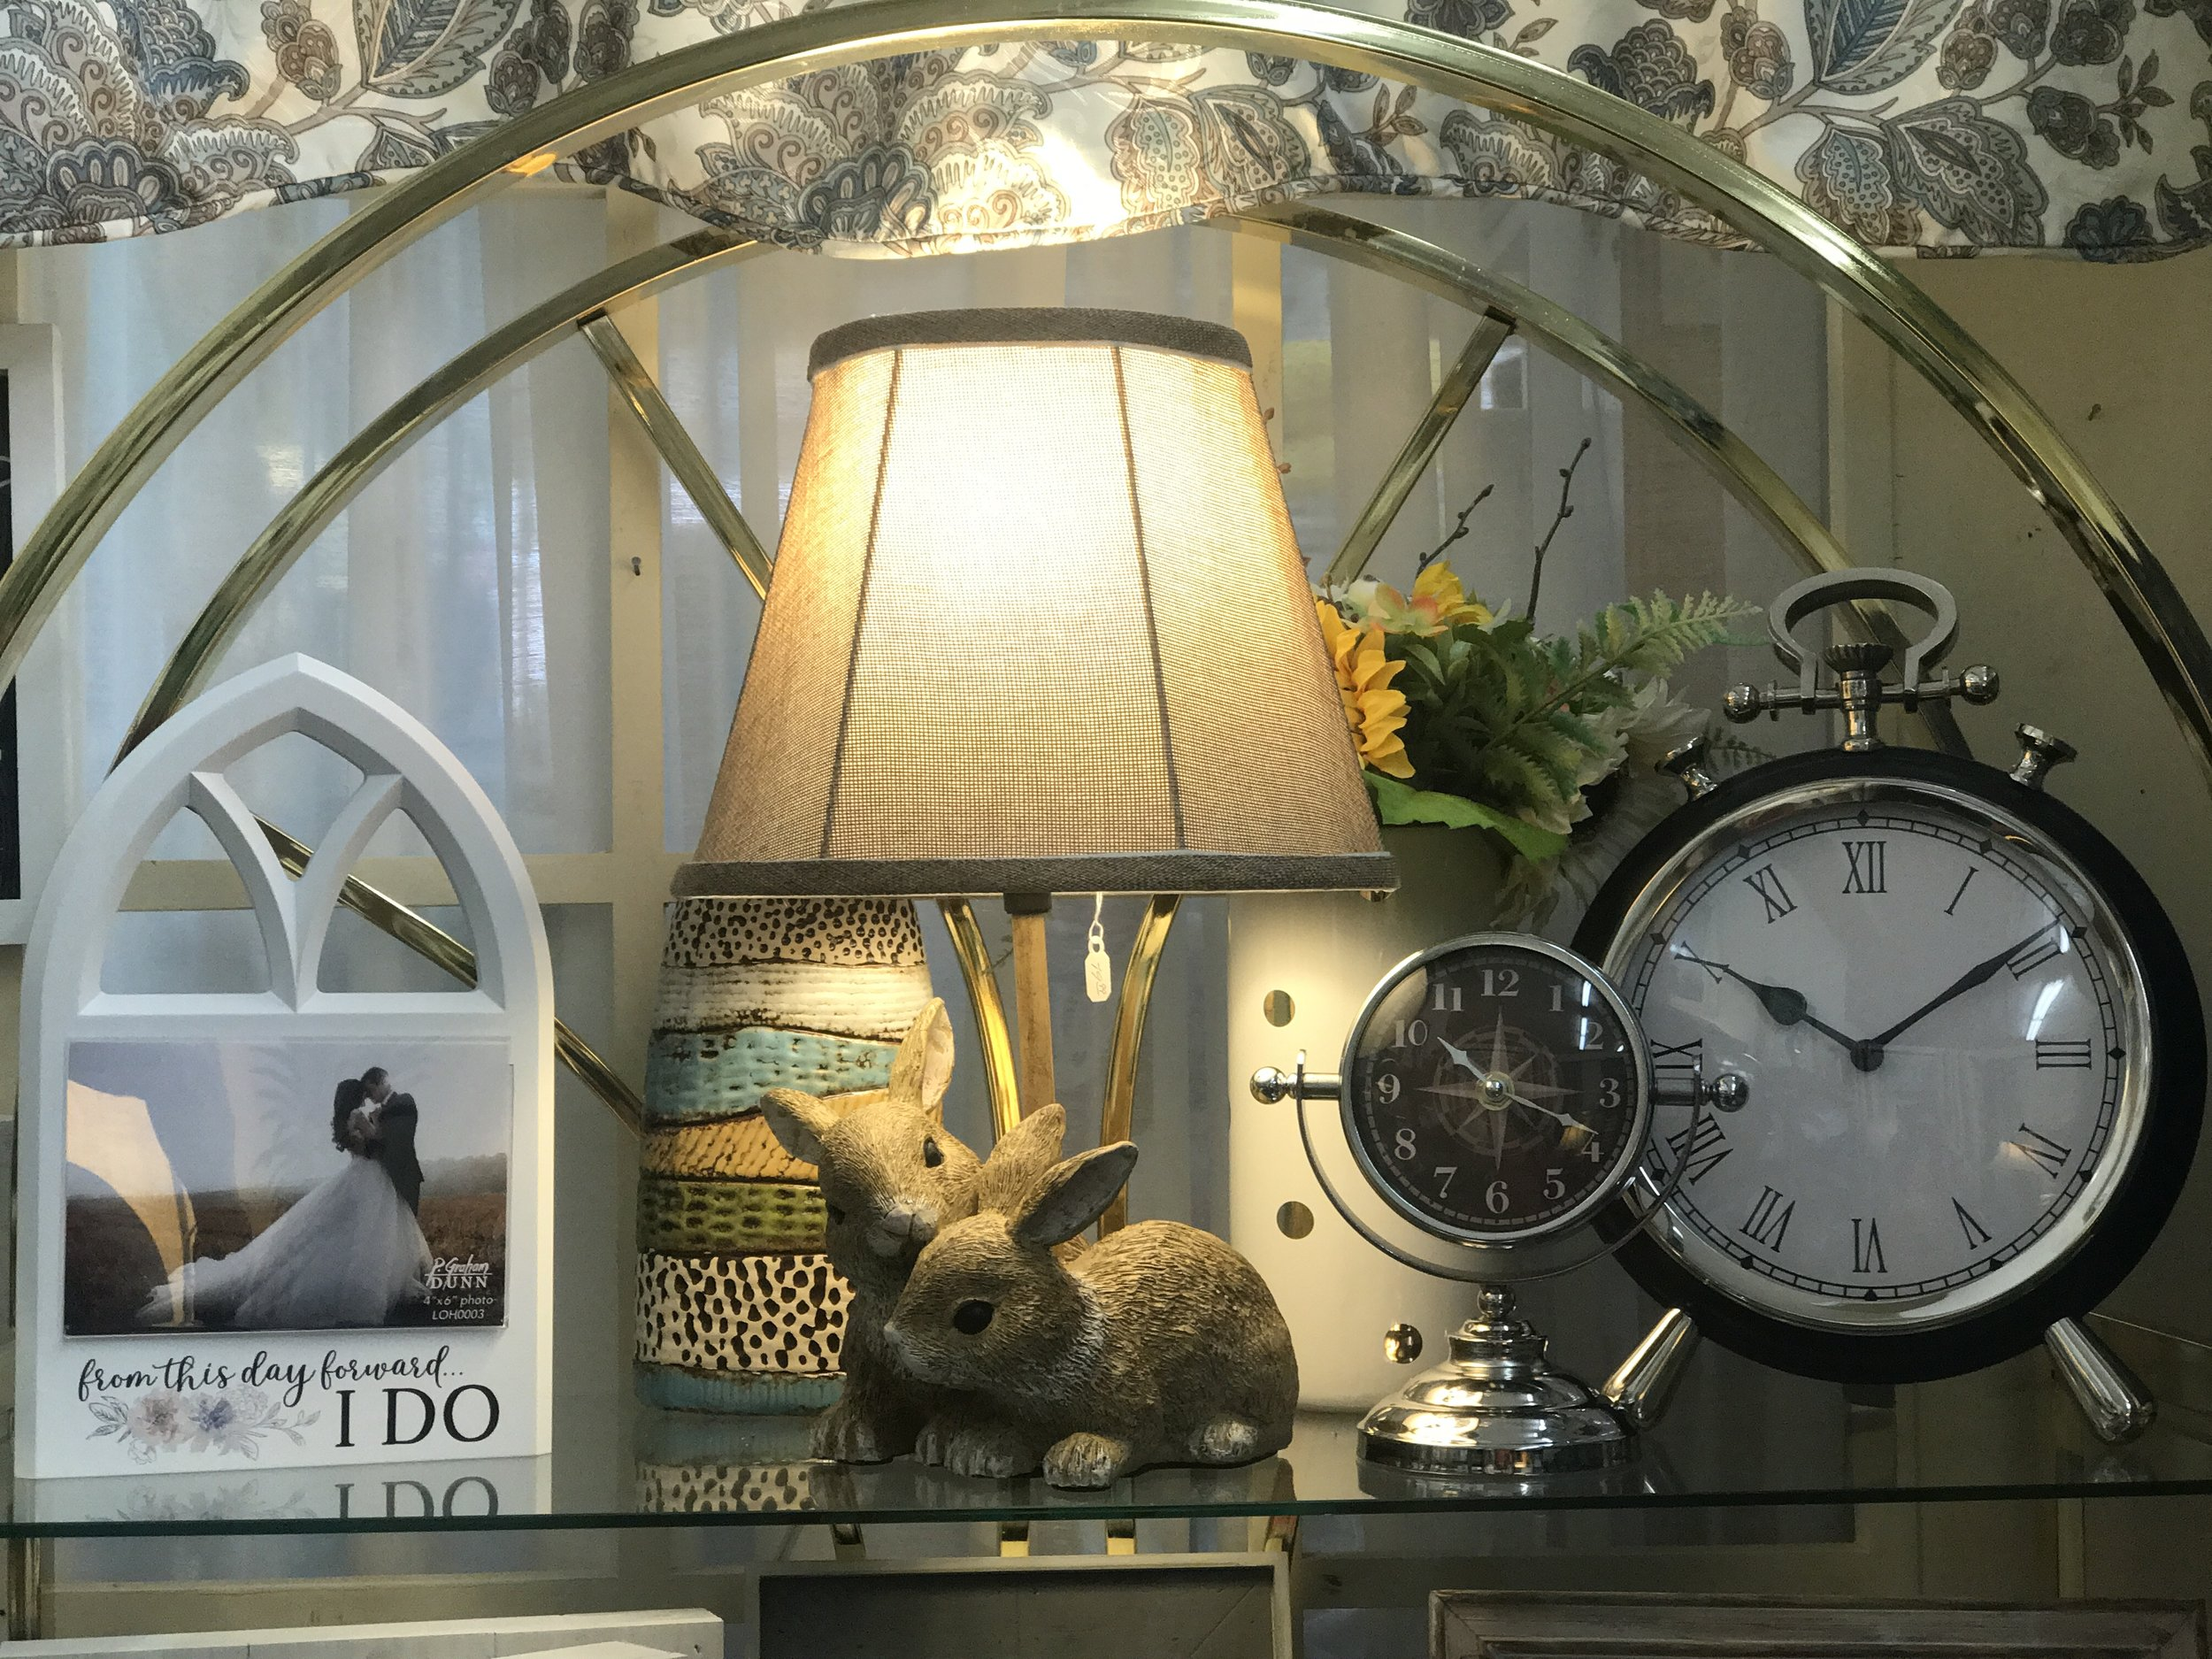 Bunny Lamp and Assorted Clocks